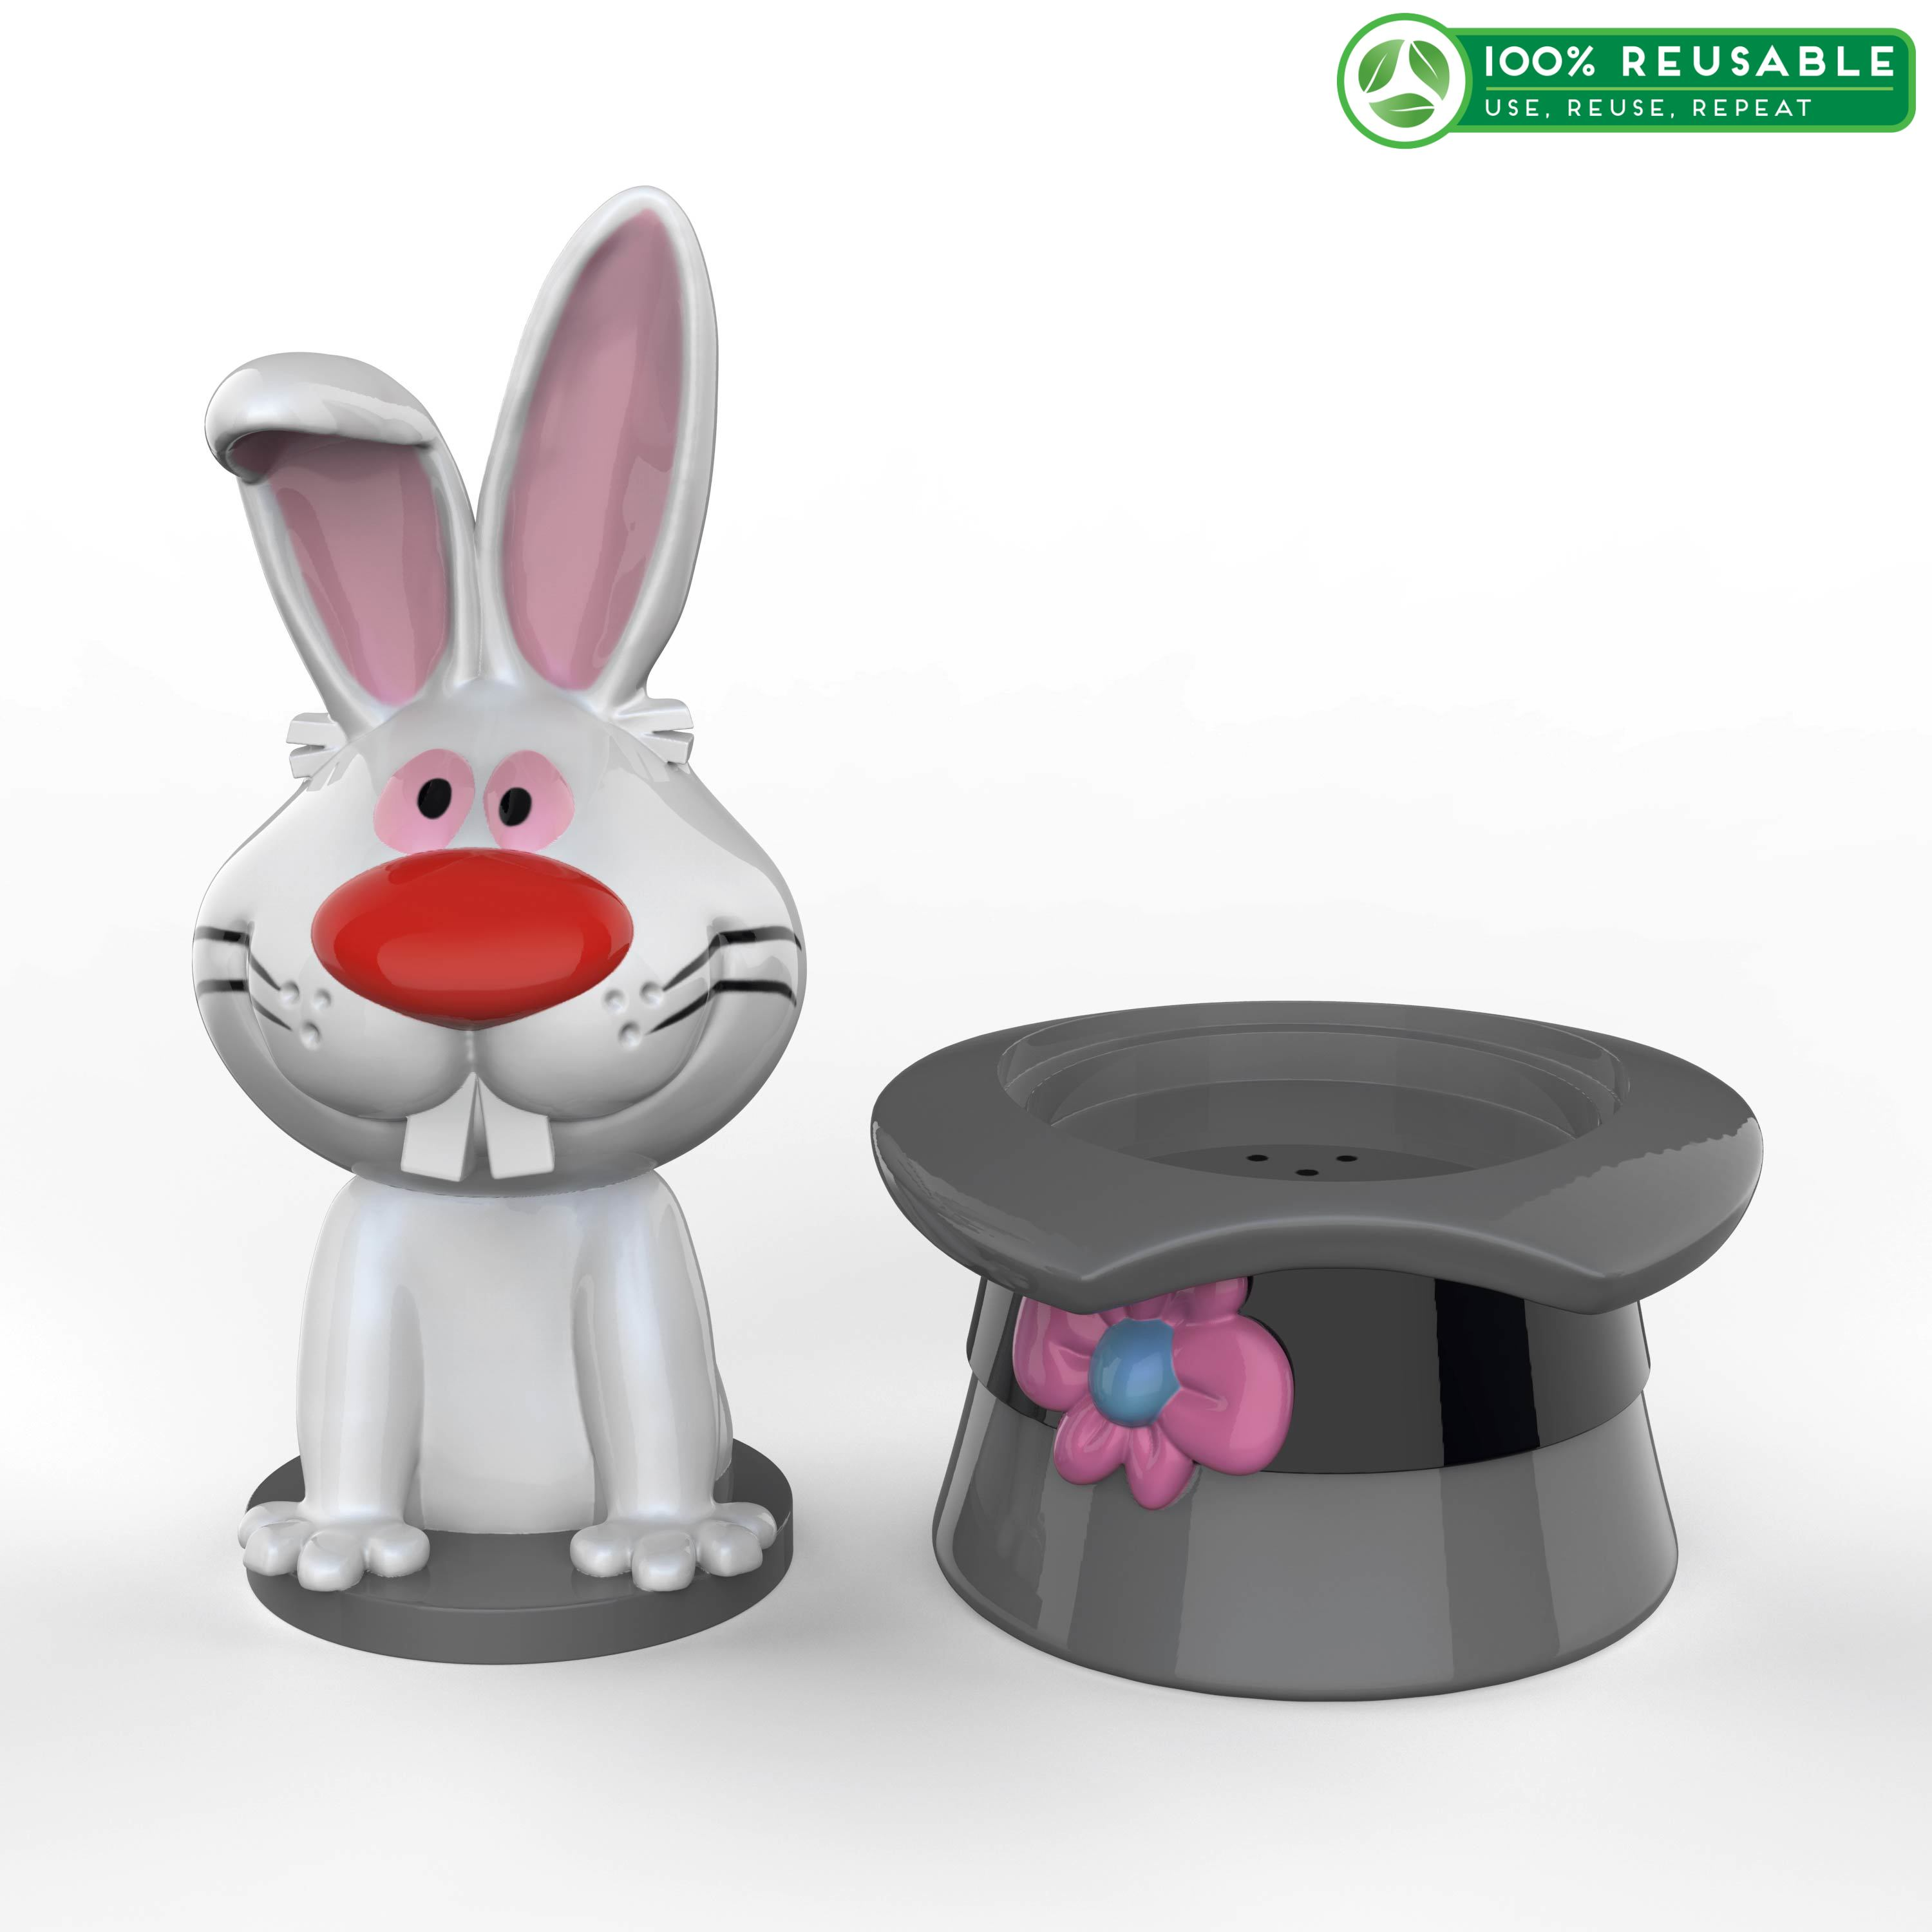 Frosty the Snowman Salt and Pepper Shaker Set, Top Hat & Bunny, 2-piece set slideshow image 1